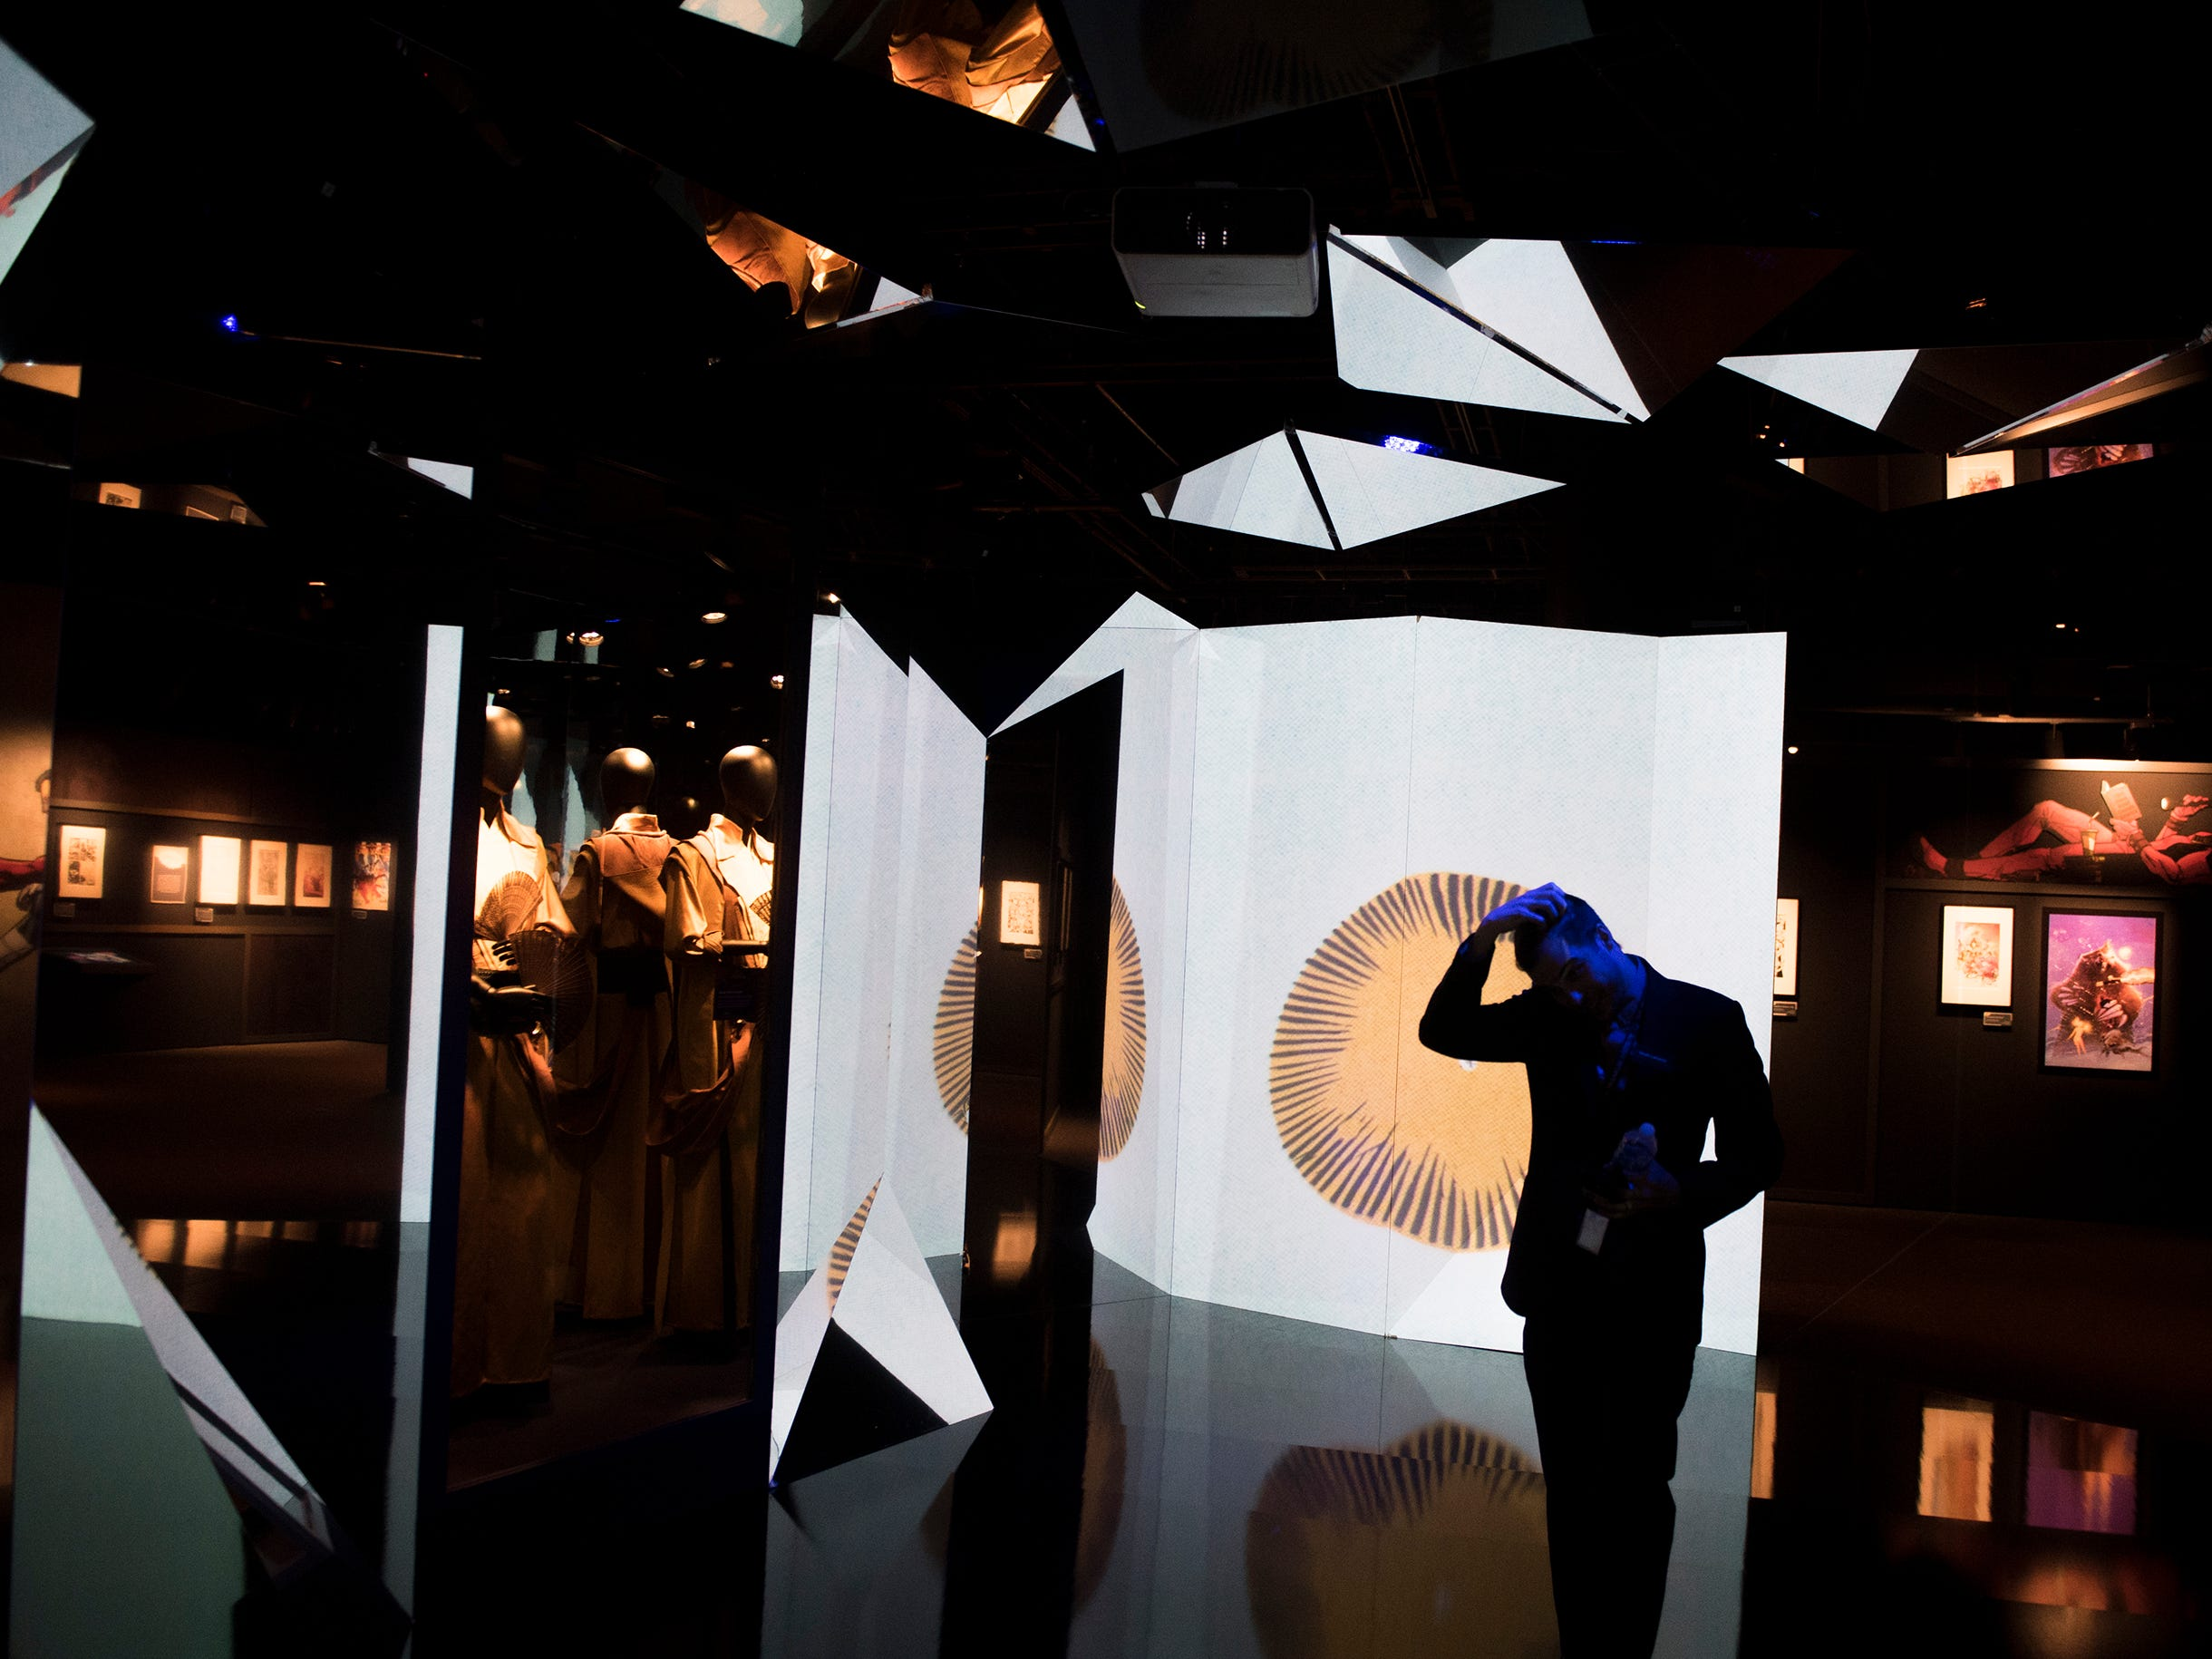 Inside a disorienting Doctor Strange exhibit at the new 'Marvel: Universe of Super Heroes' installation at the Franklin Institute Friday, April 12, 2019 in Philadelphia, Pa. The exhibit runs from April 13-September 2.